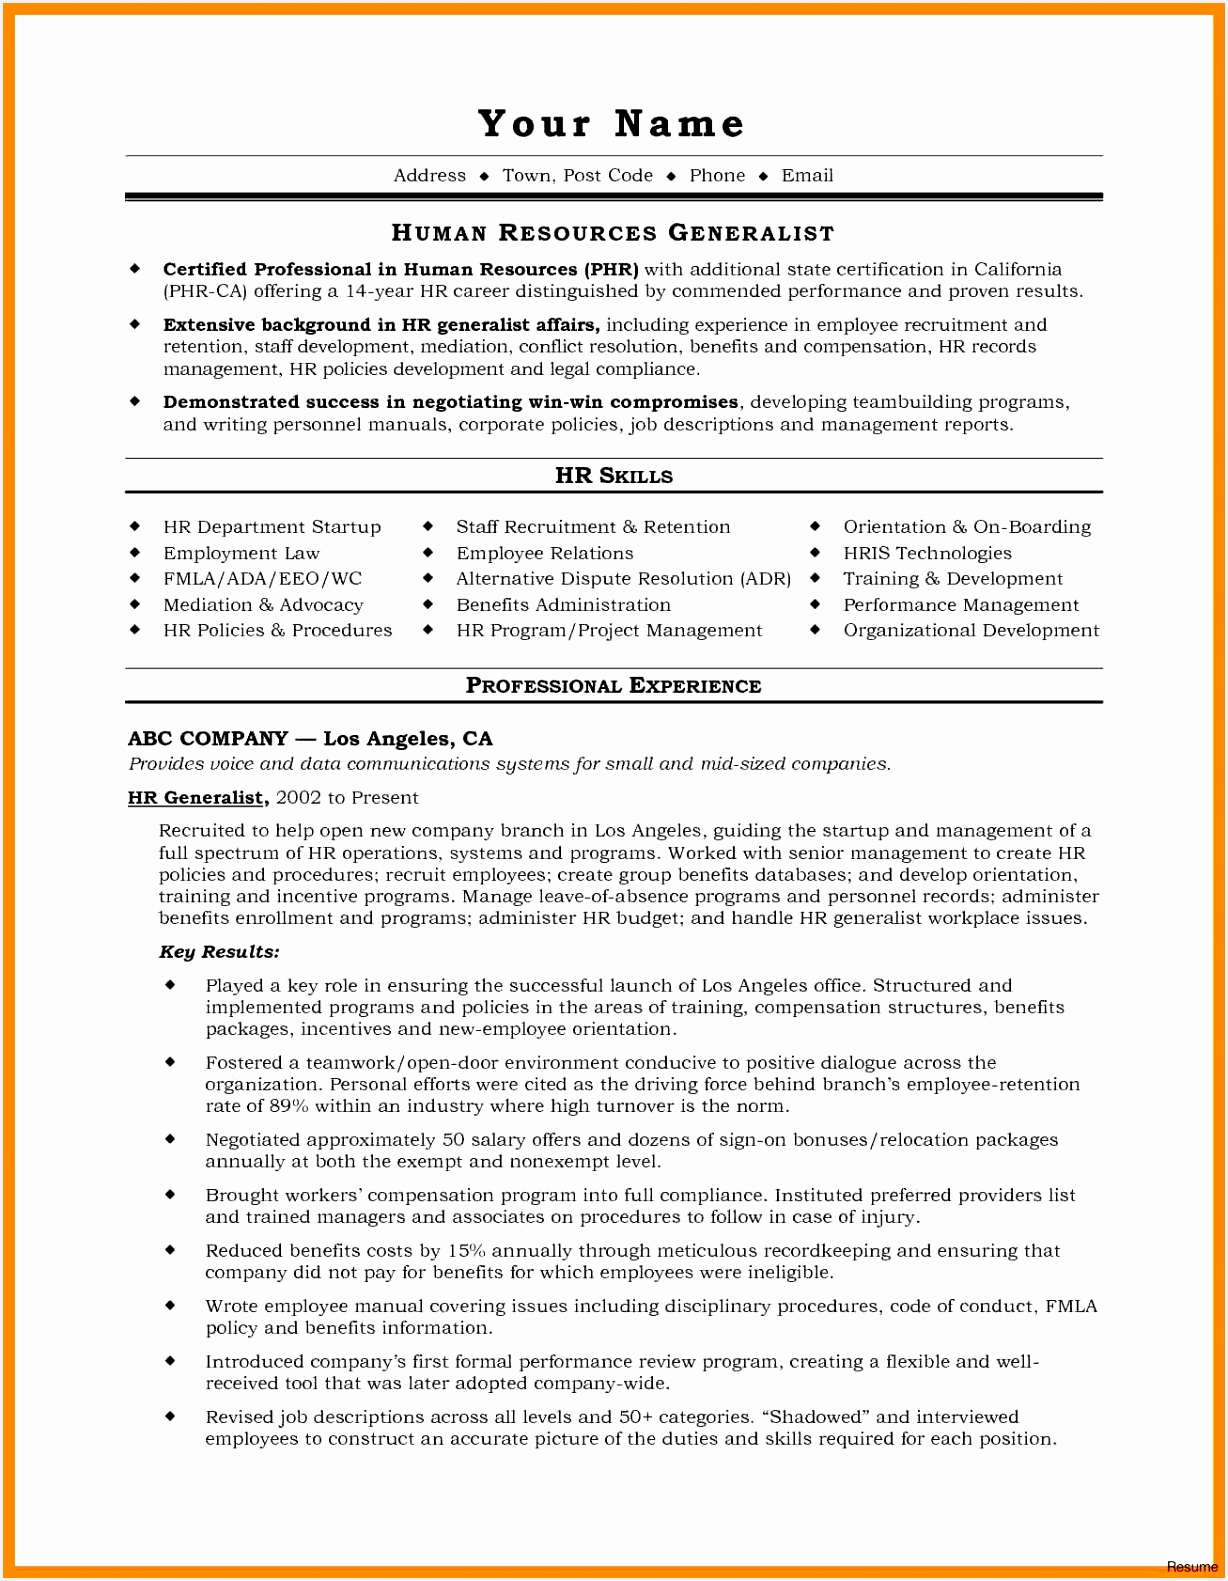 Microsoft Trainer Sample Resume Iqqds Awesome Microsoft Word Resume Templates 2017 Lovely Sample Resume Word File Of Microsoft Trainer Sample Resume Bvgrh Unique Sample Pitch for Resume Popular Good Examples Resumes Inspirational